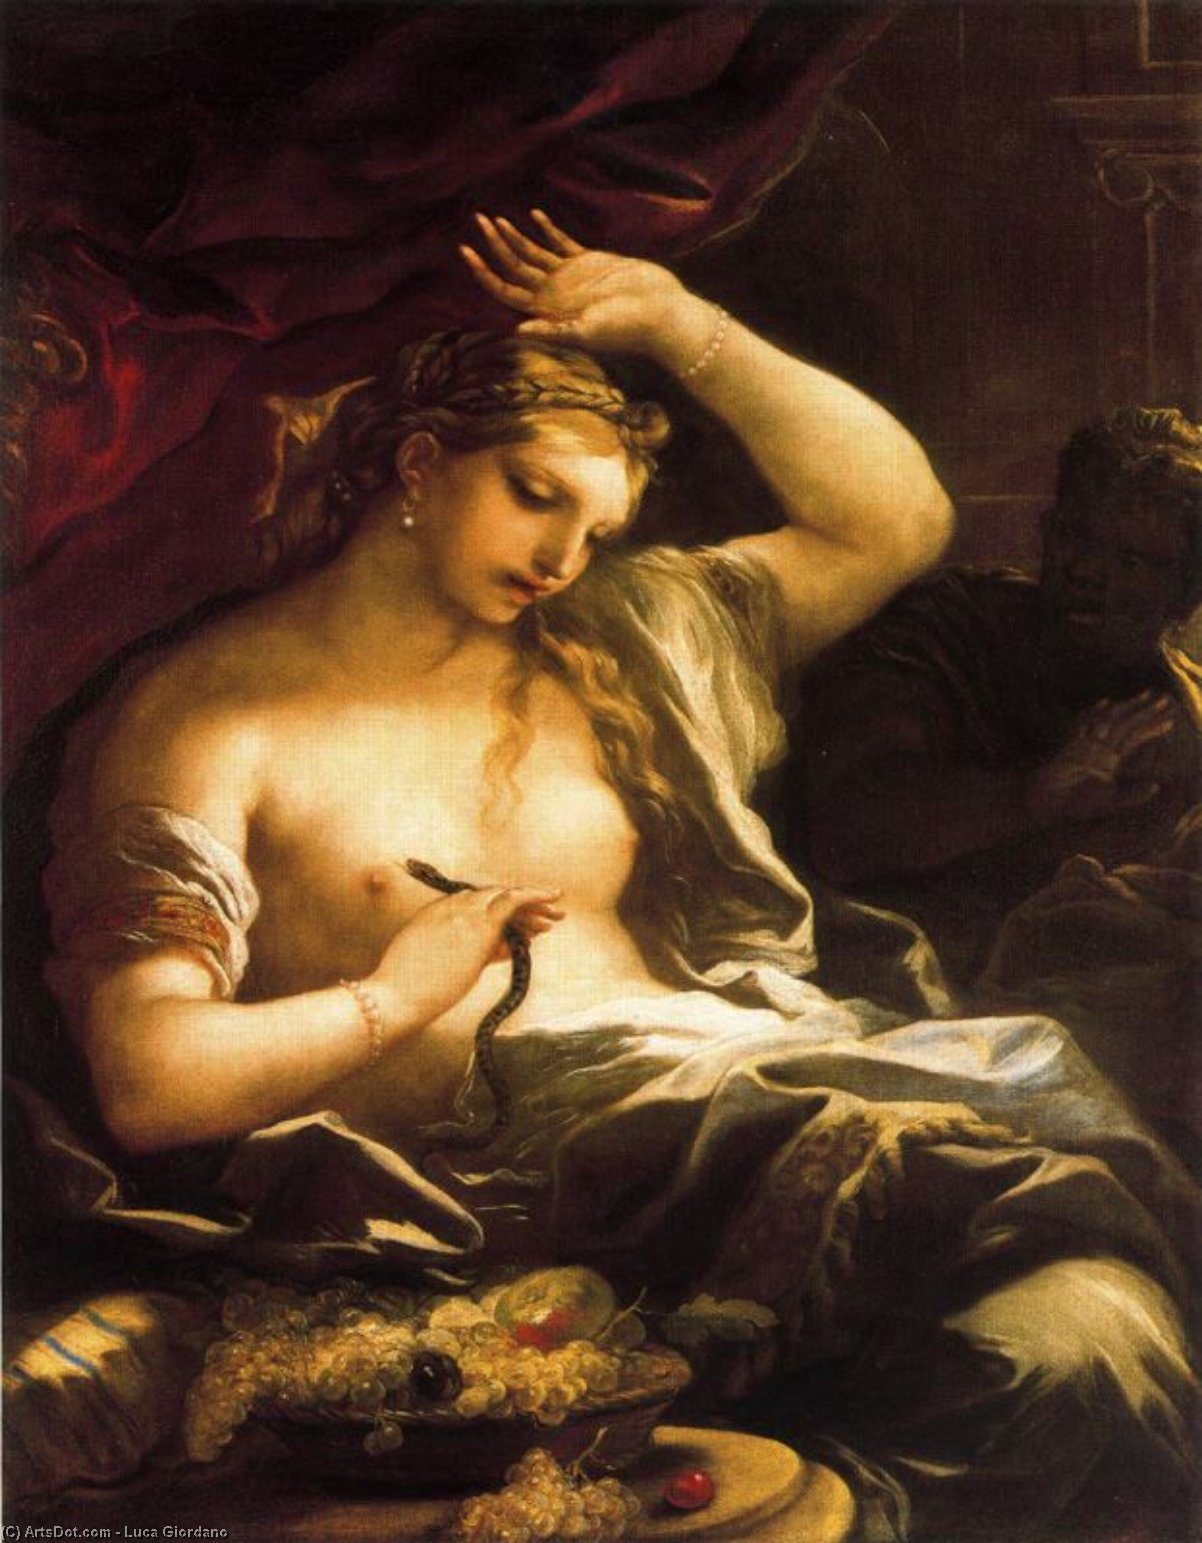 Death of Cleopatra by Luca Giordano (1634-1705, Italy)